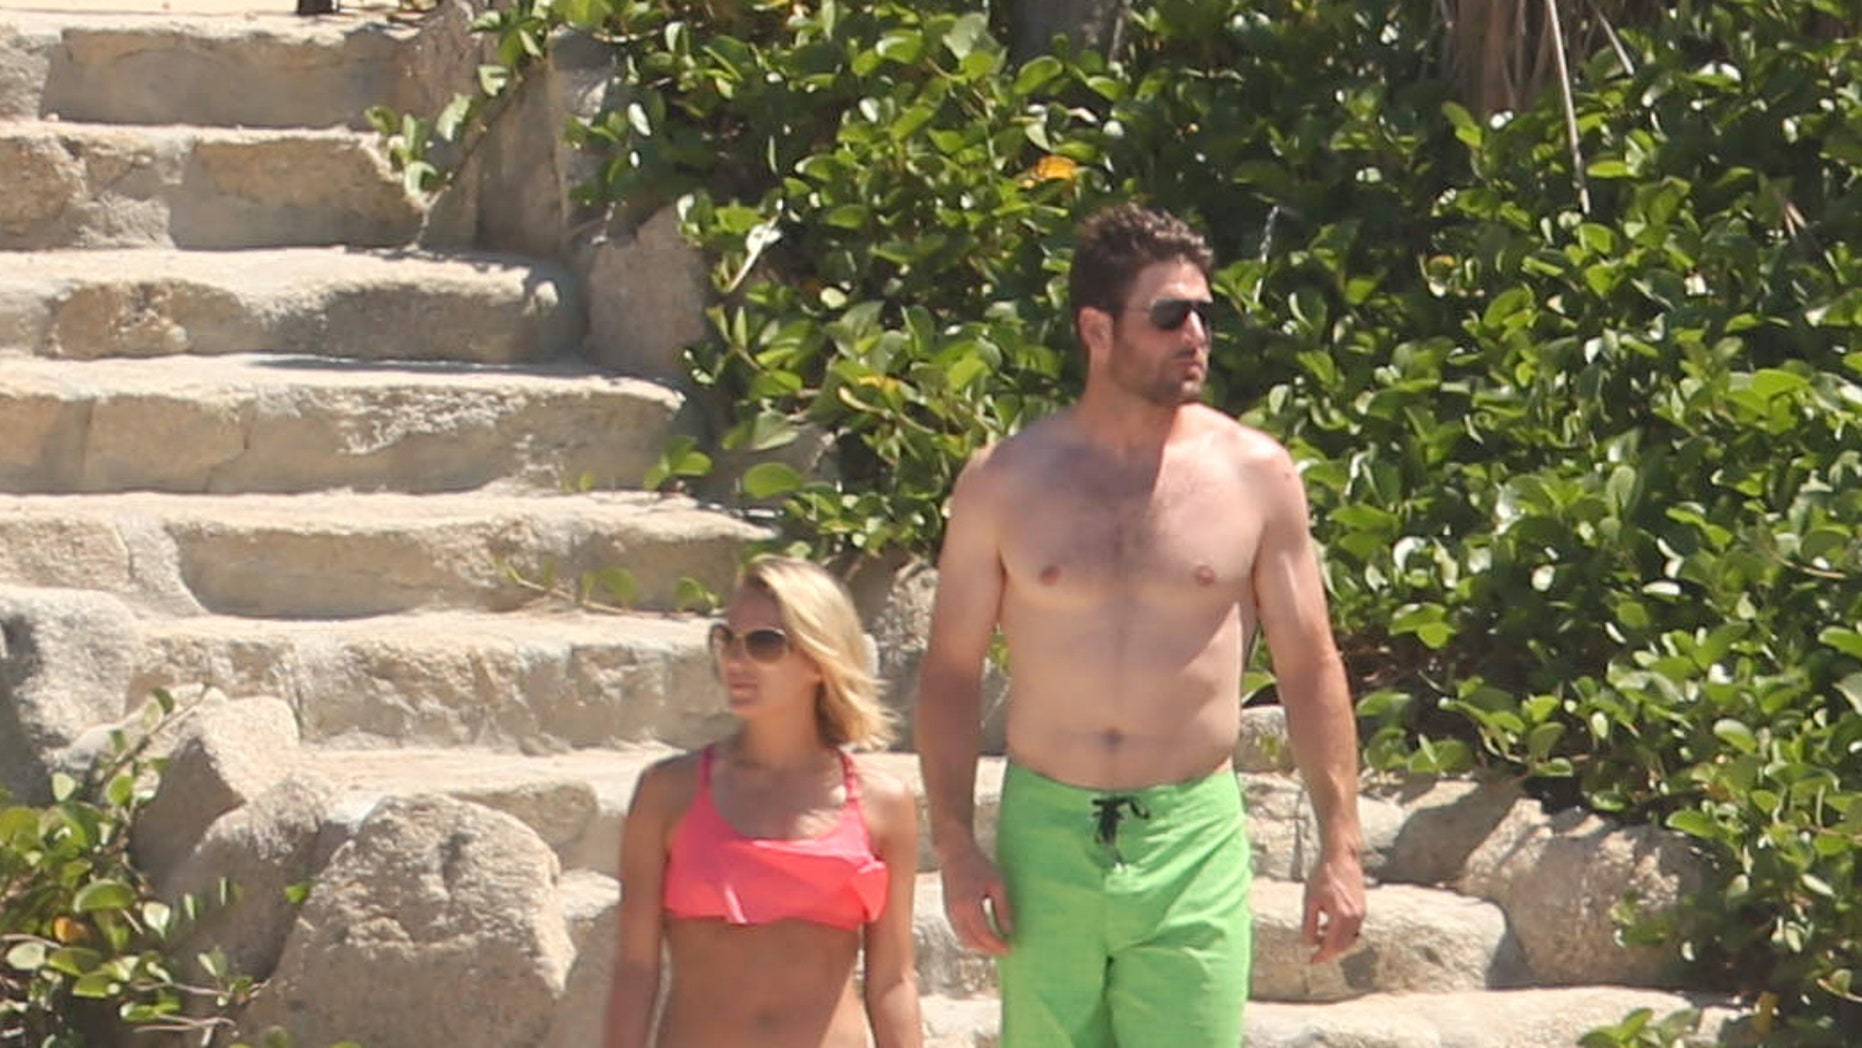 Exclusive... 52114060 Singer Carrie Underwood and her husband, Mike Fisher are seen vacationing in Cabo, Mexico on July 6, 2016. The couple was seen relaxing and soaking in the rays before dipping their feet into the ocean water. ***NO USE W/O PRIOR AGREEMENT-CALL FOR PRICING*** FameFlynet, Inc - Beverly Hills, CA, USA - +1 (310) 505-9876